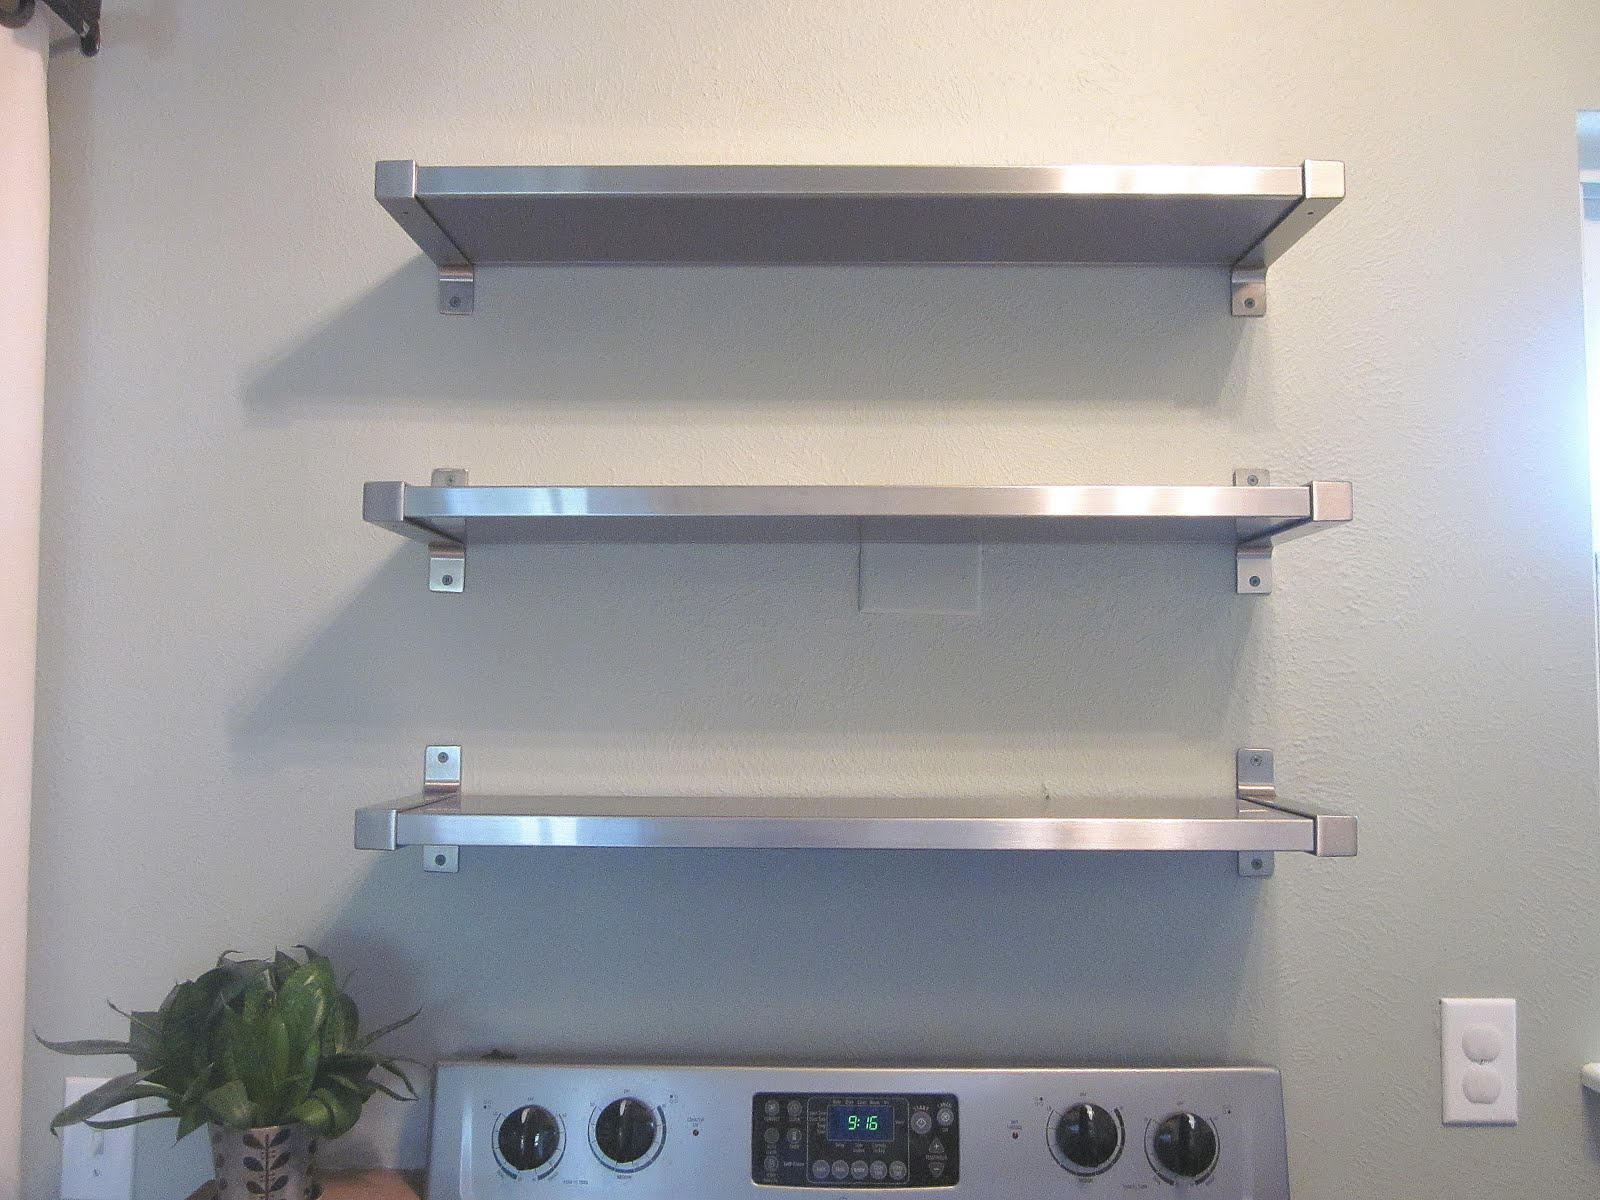 Ikea Insanity Kitchen Shelves